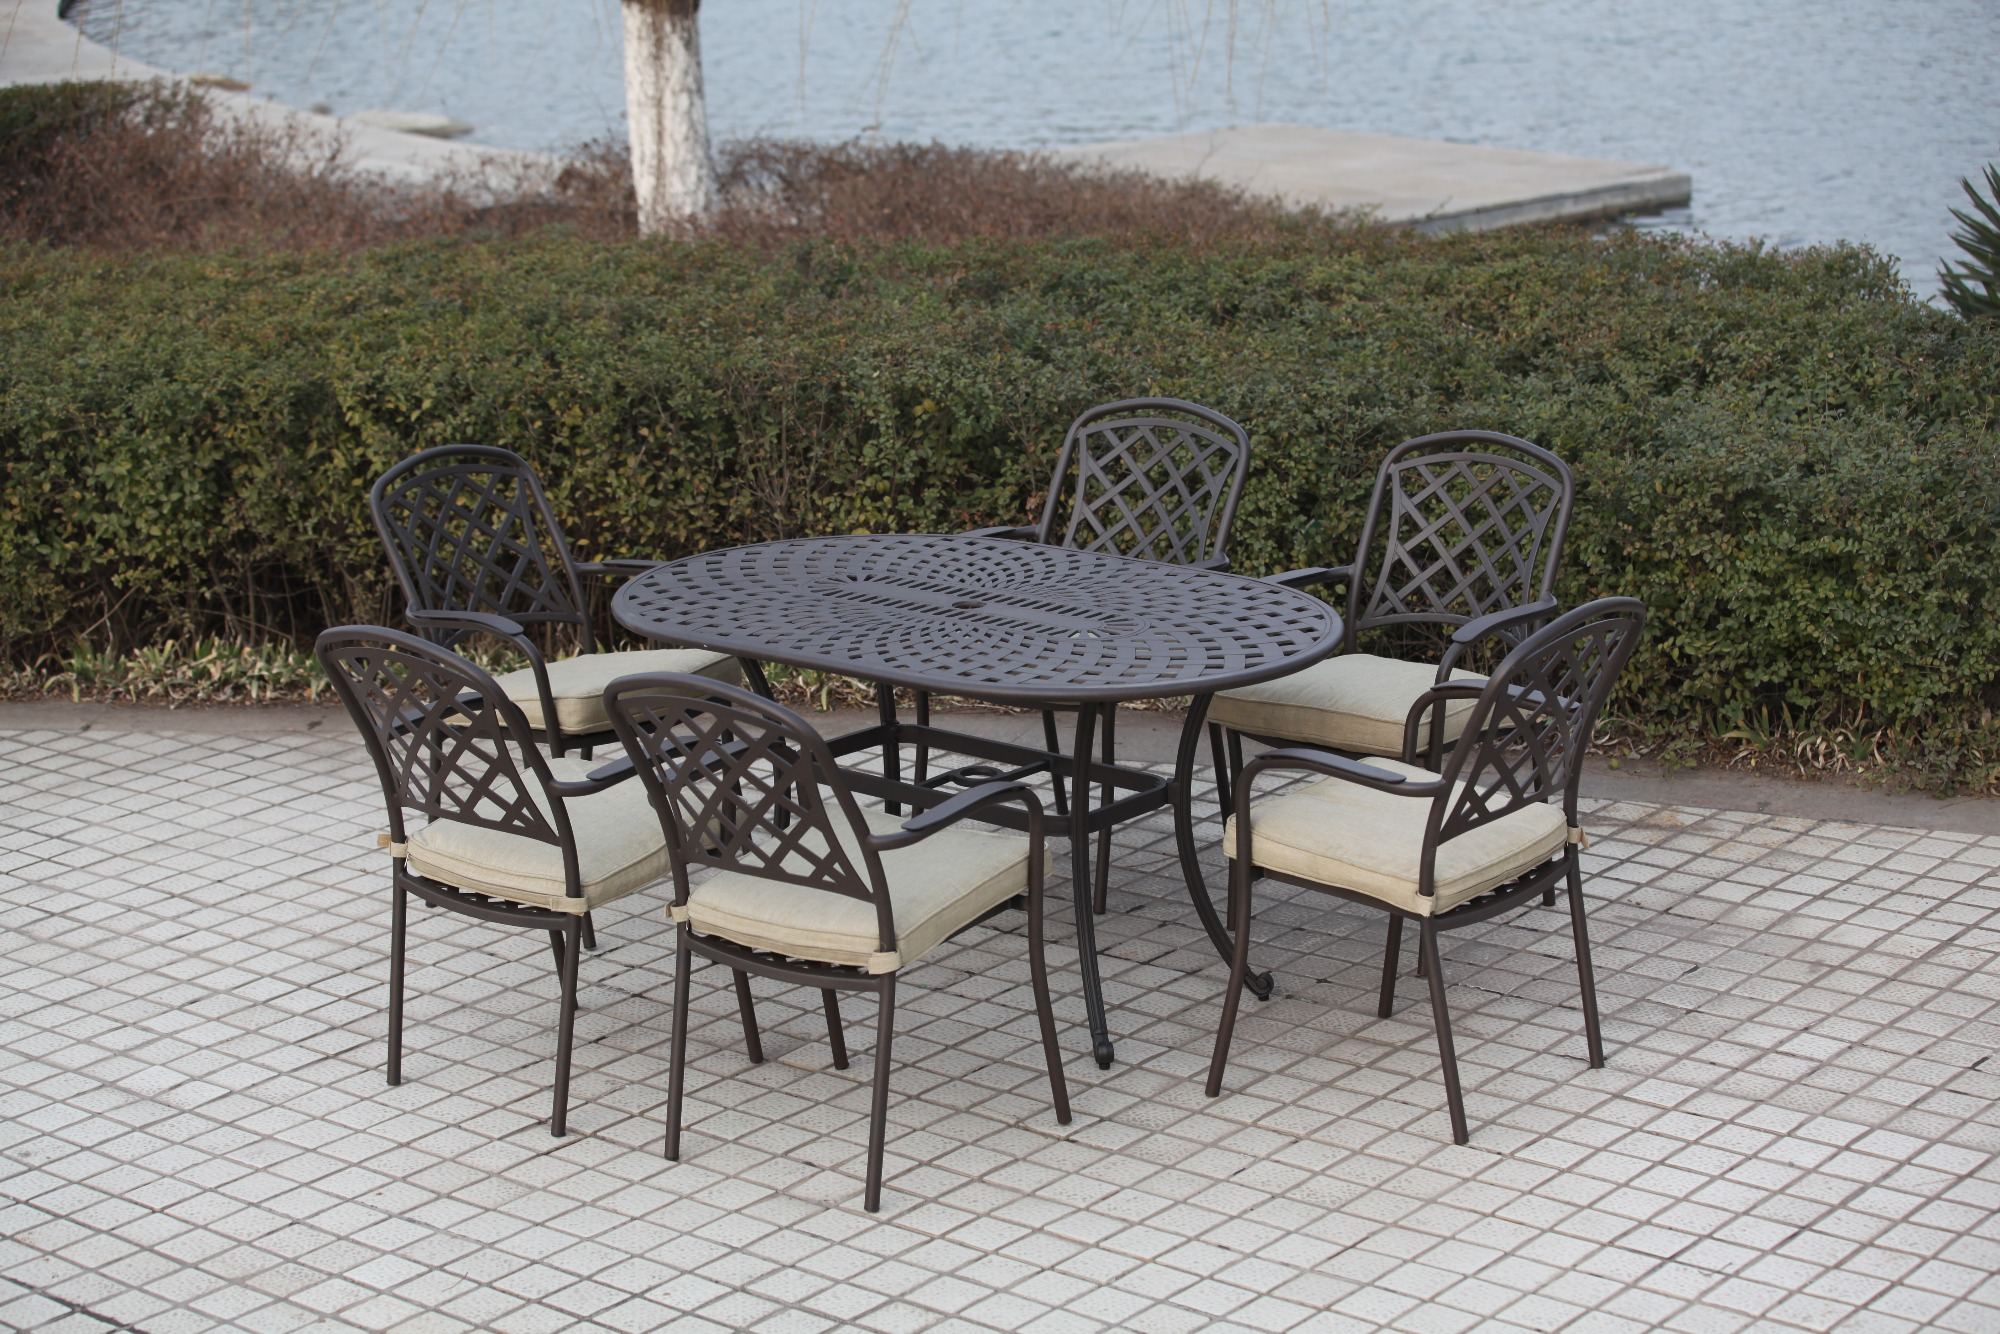 SY-9145T 9048C dining table and chair